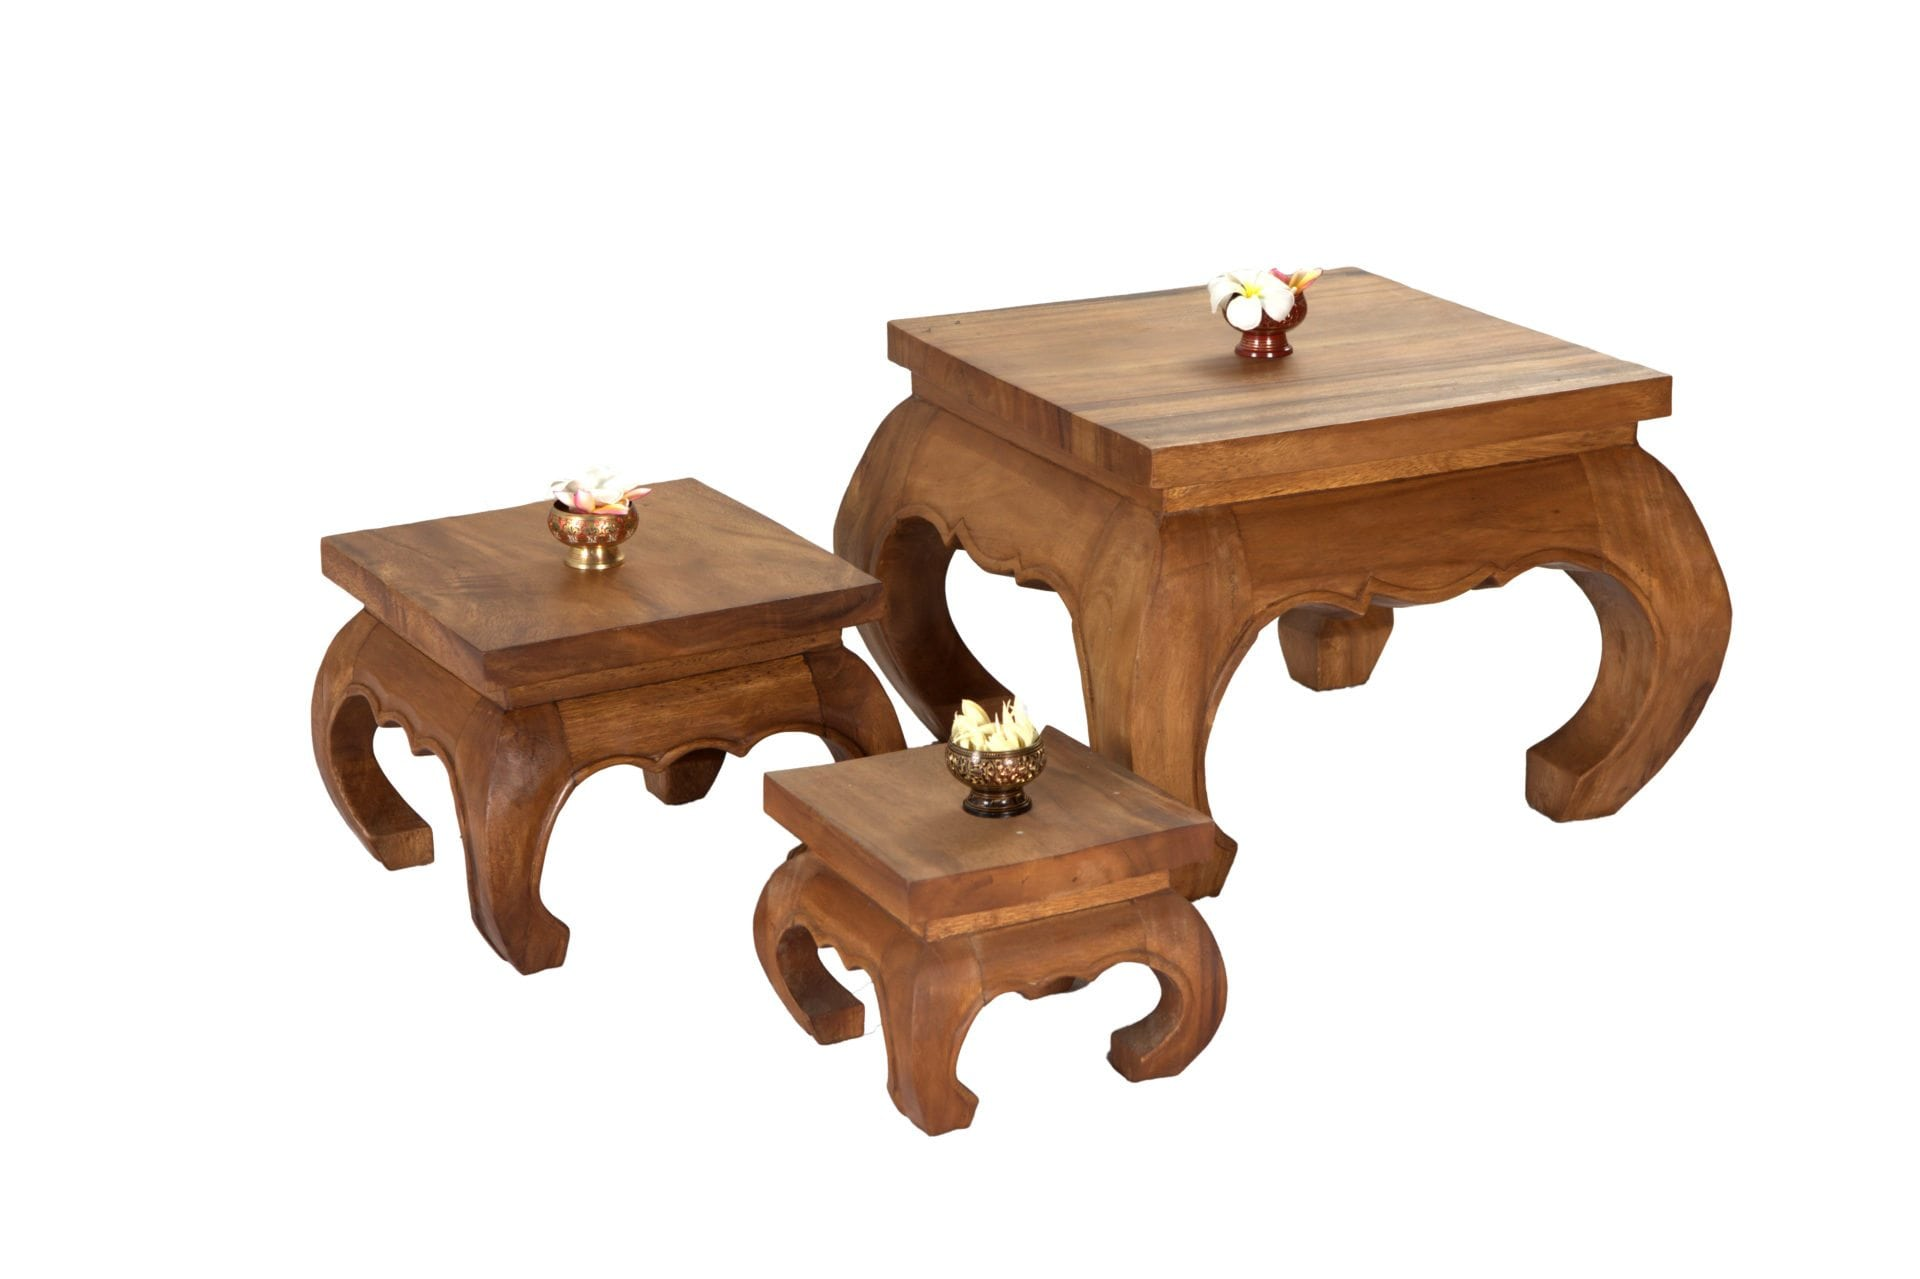 Twist Stools & Wood Carving Stools